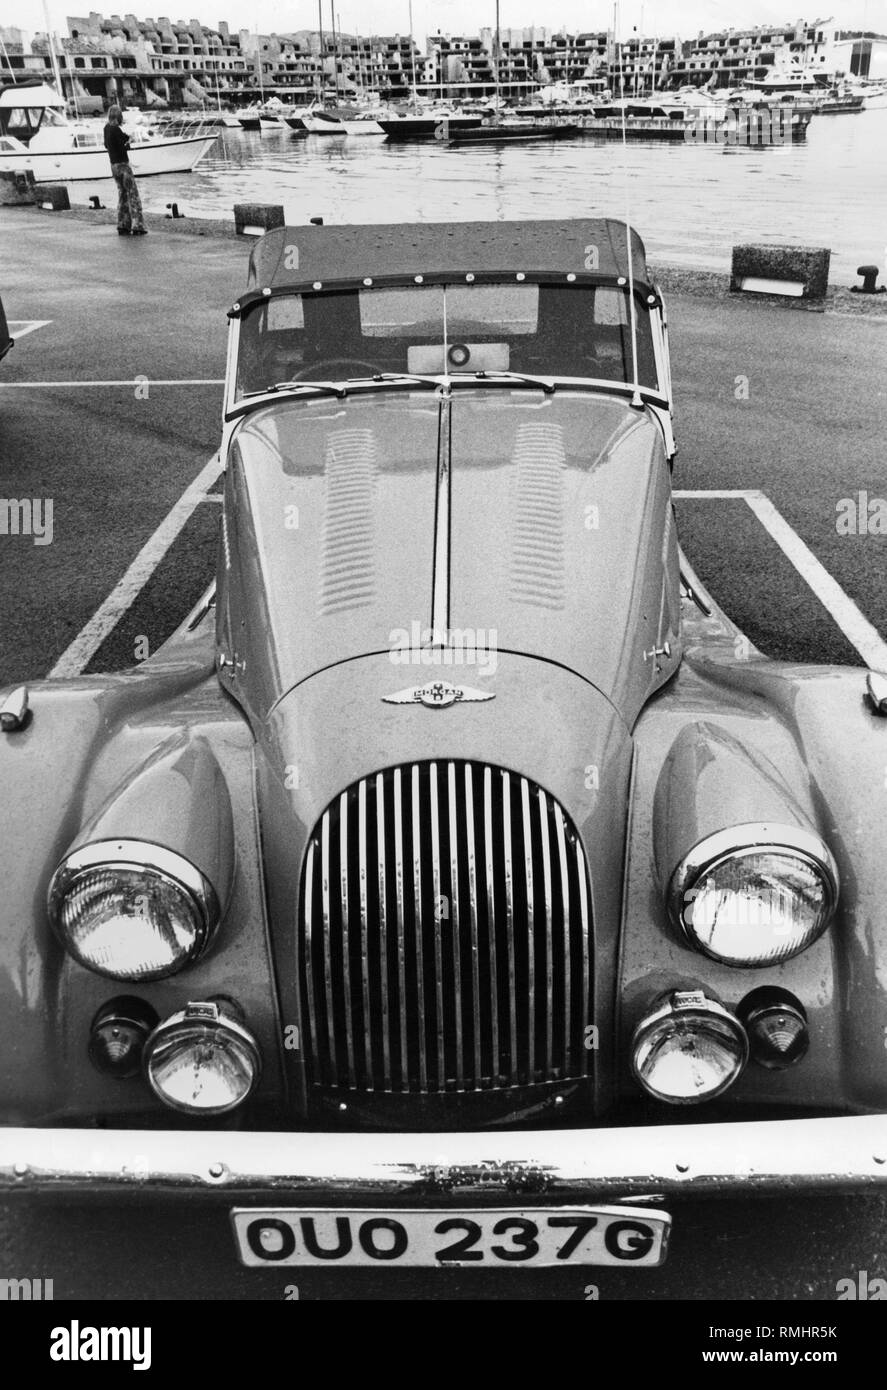 A Morgan Plus 8 parked at the marina of St. Tropez. - Stock Image